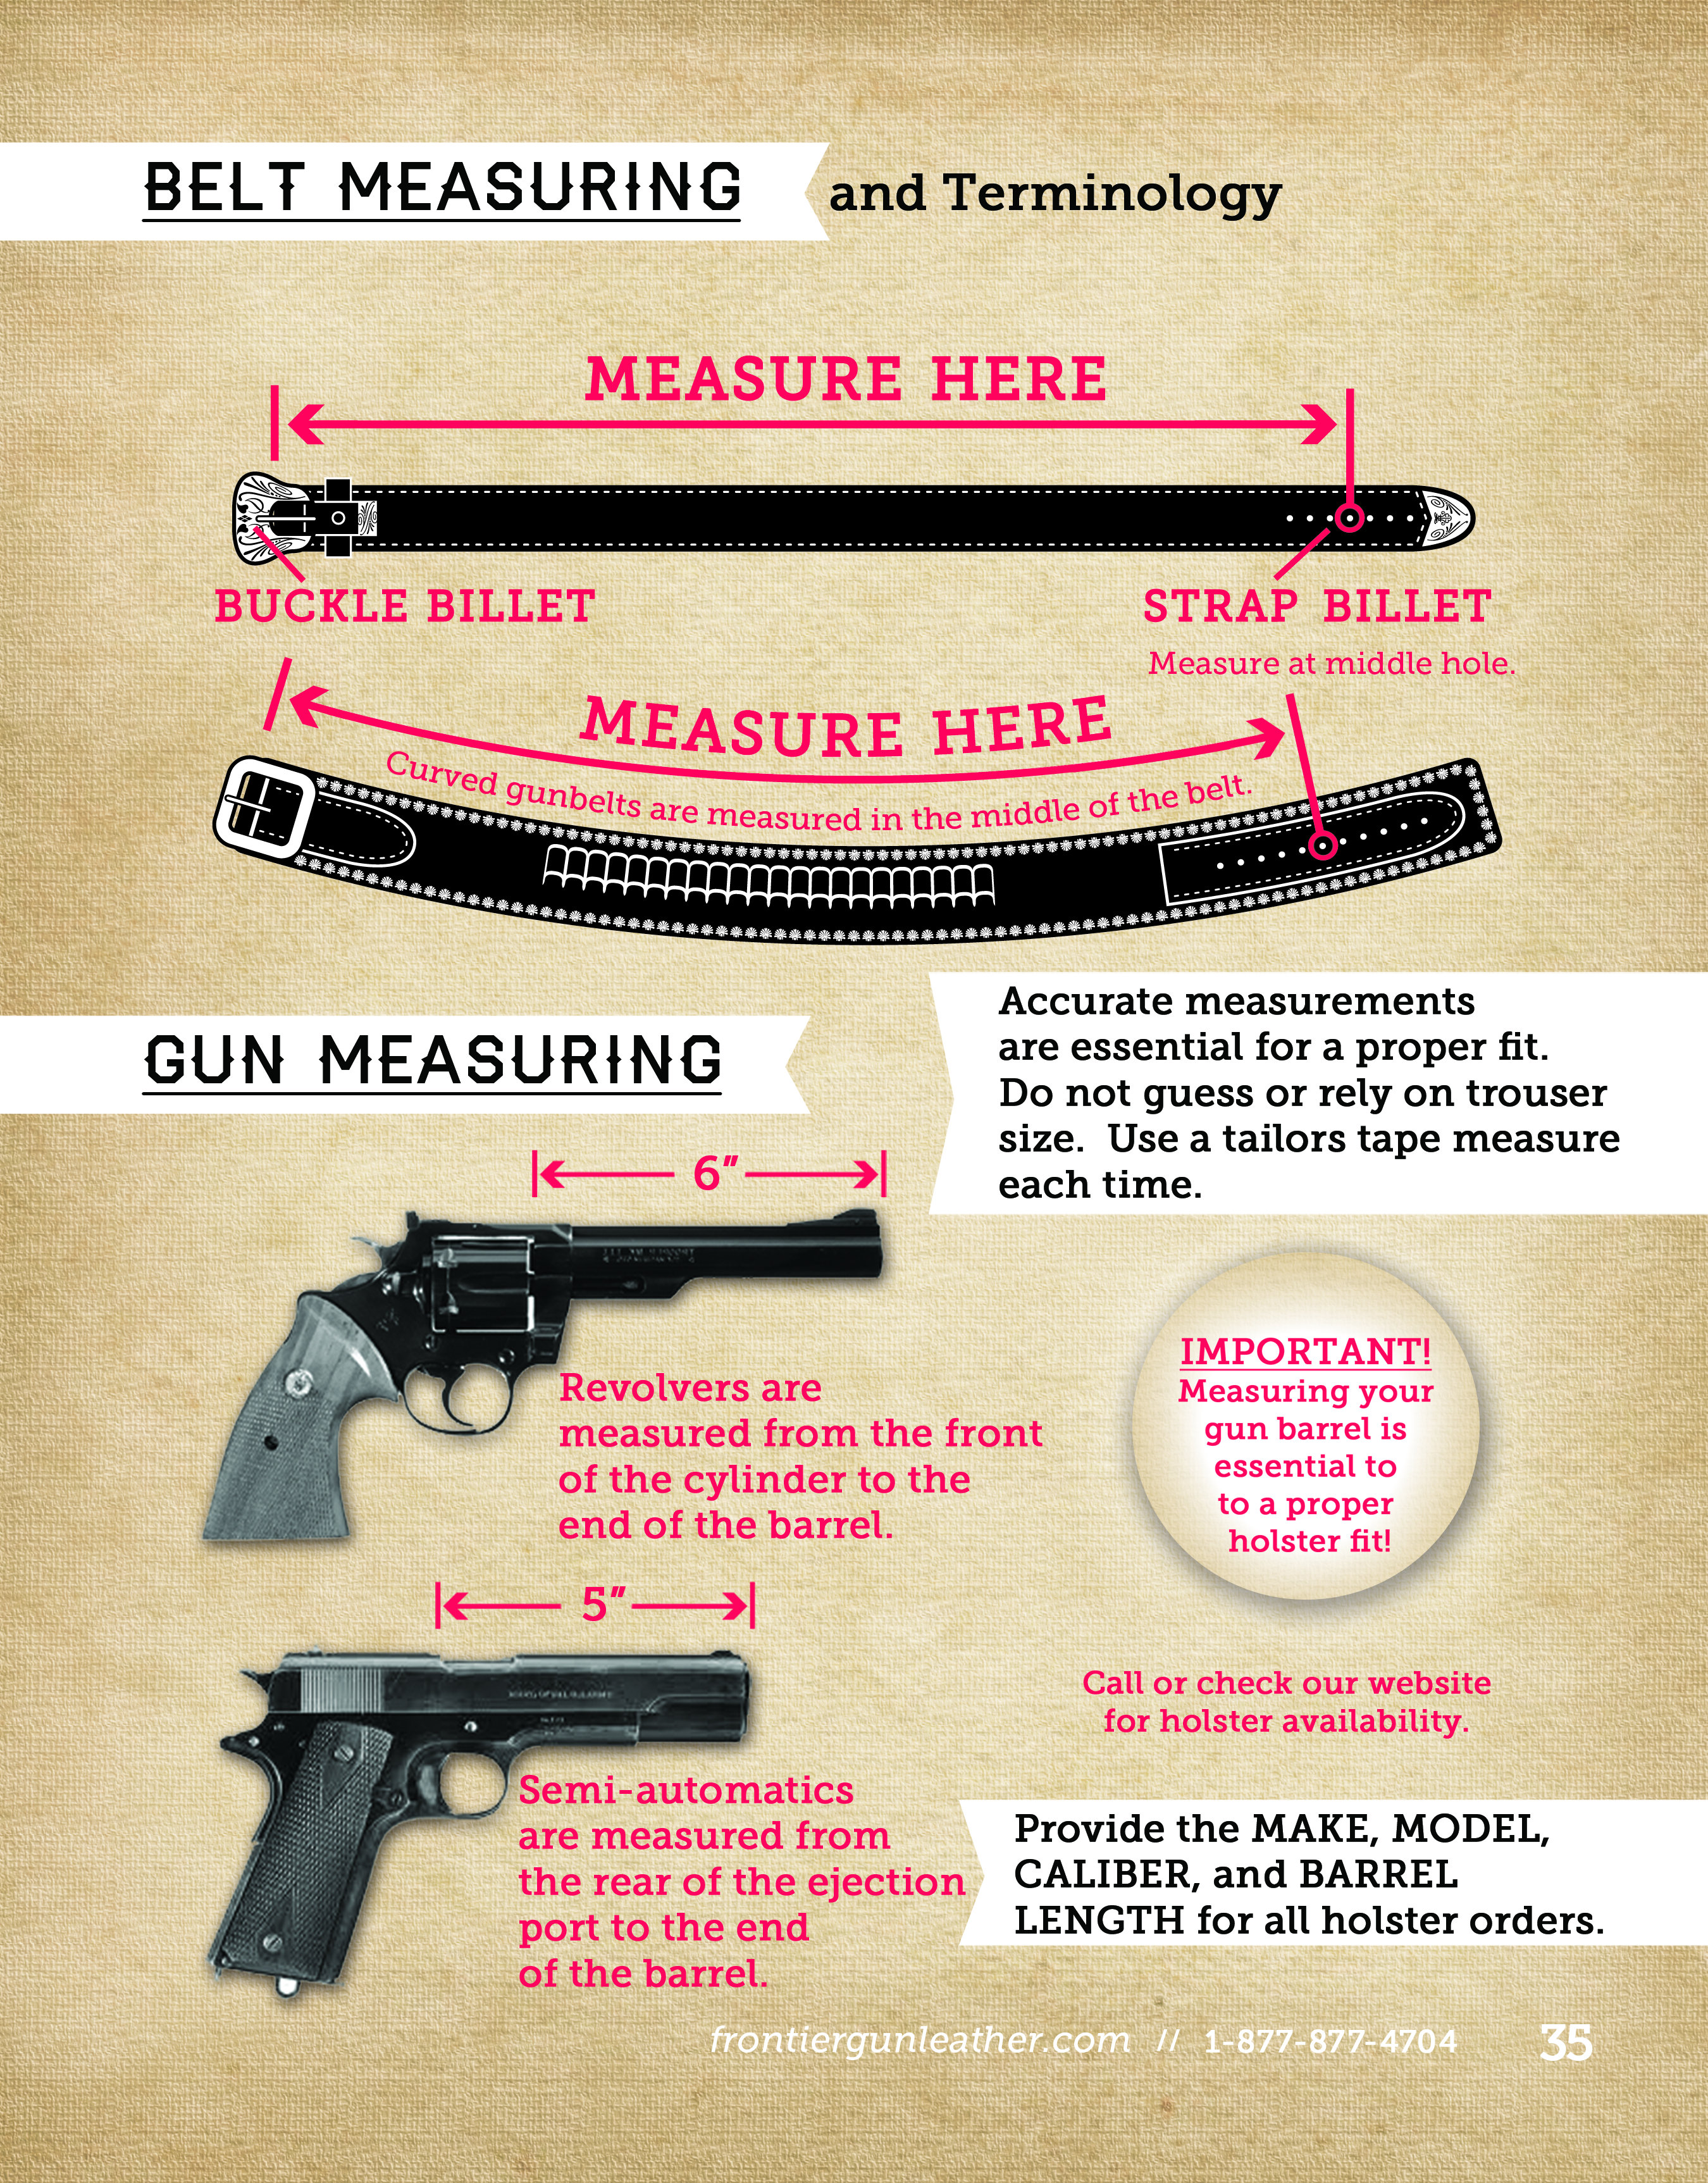 Belt and gun measuring